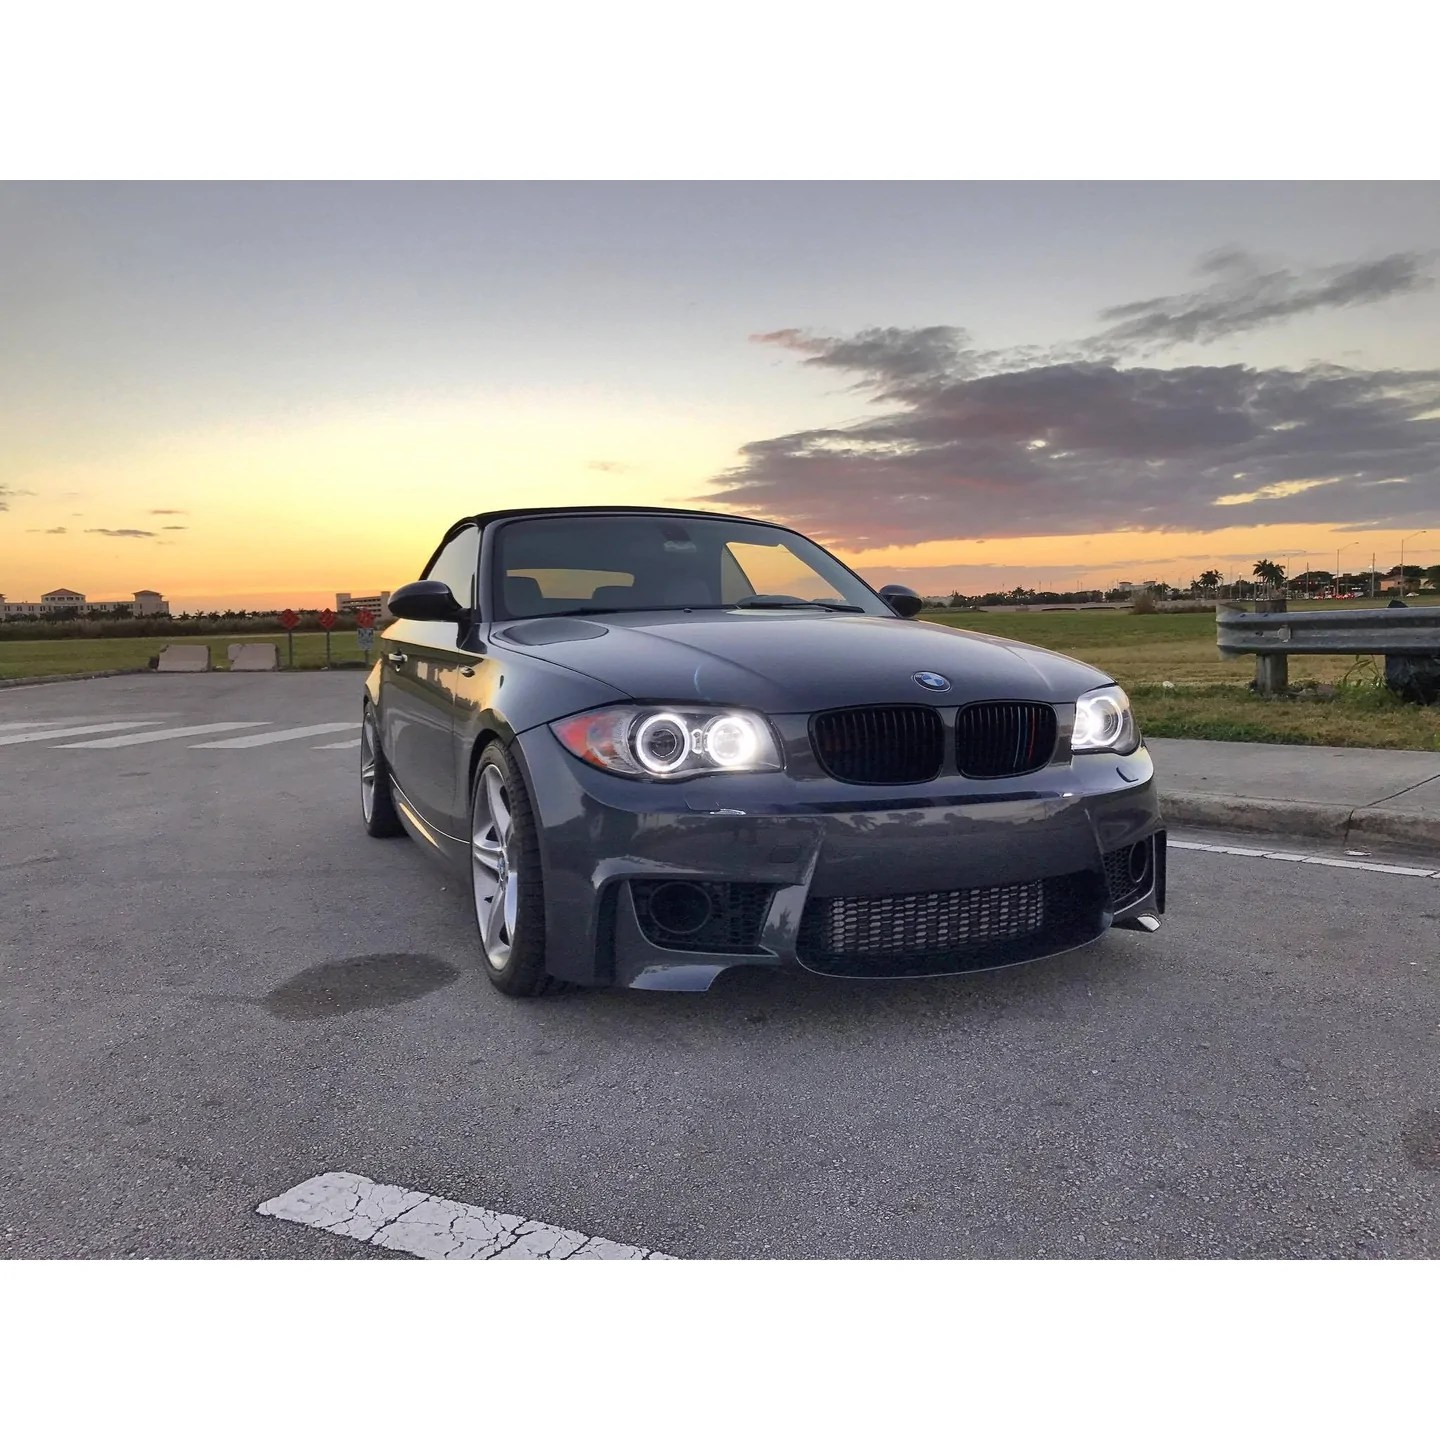 hight resolution of bmw e82 1m style front bumper aeuroplug